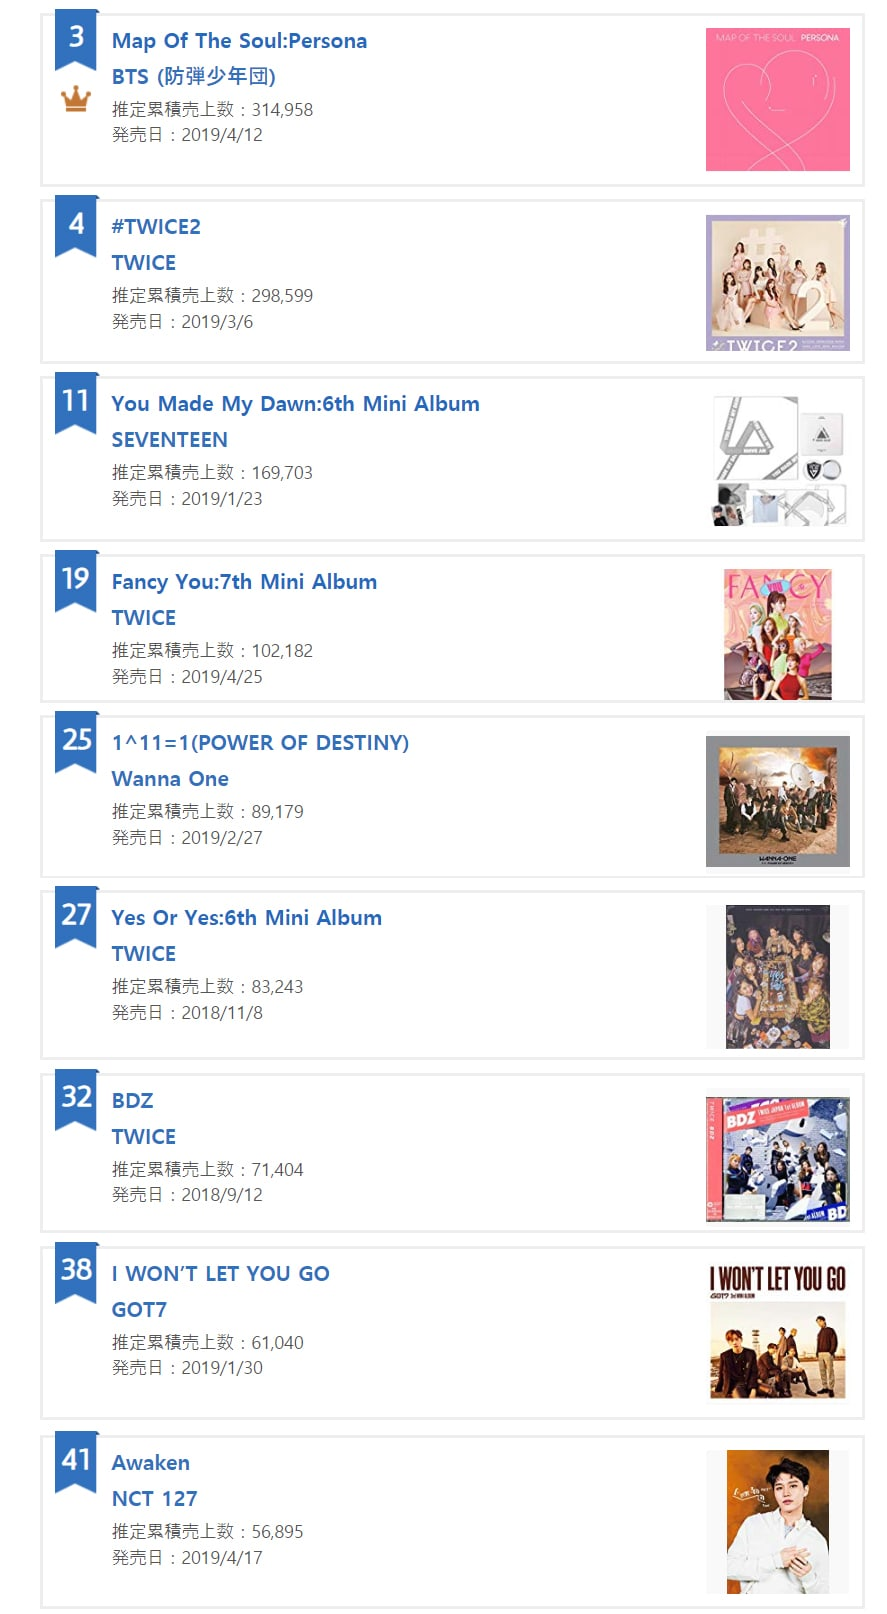 BTS, TWICE, IZ*ONE, SEVENTEEN, And More Earn Spots On Oricon's